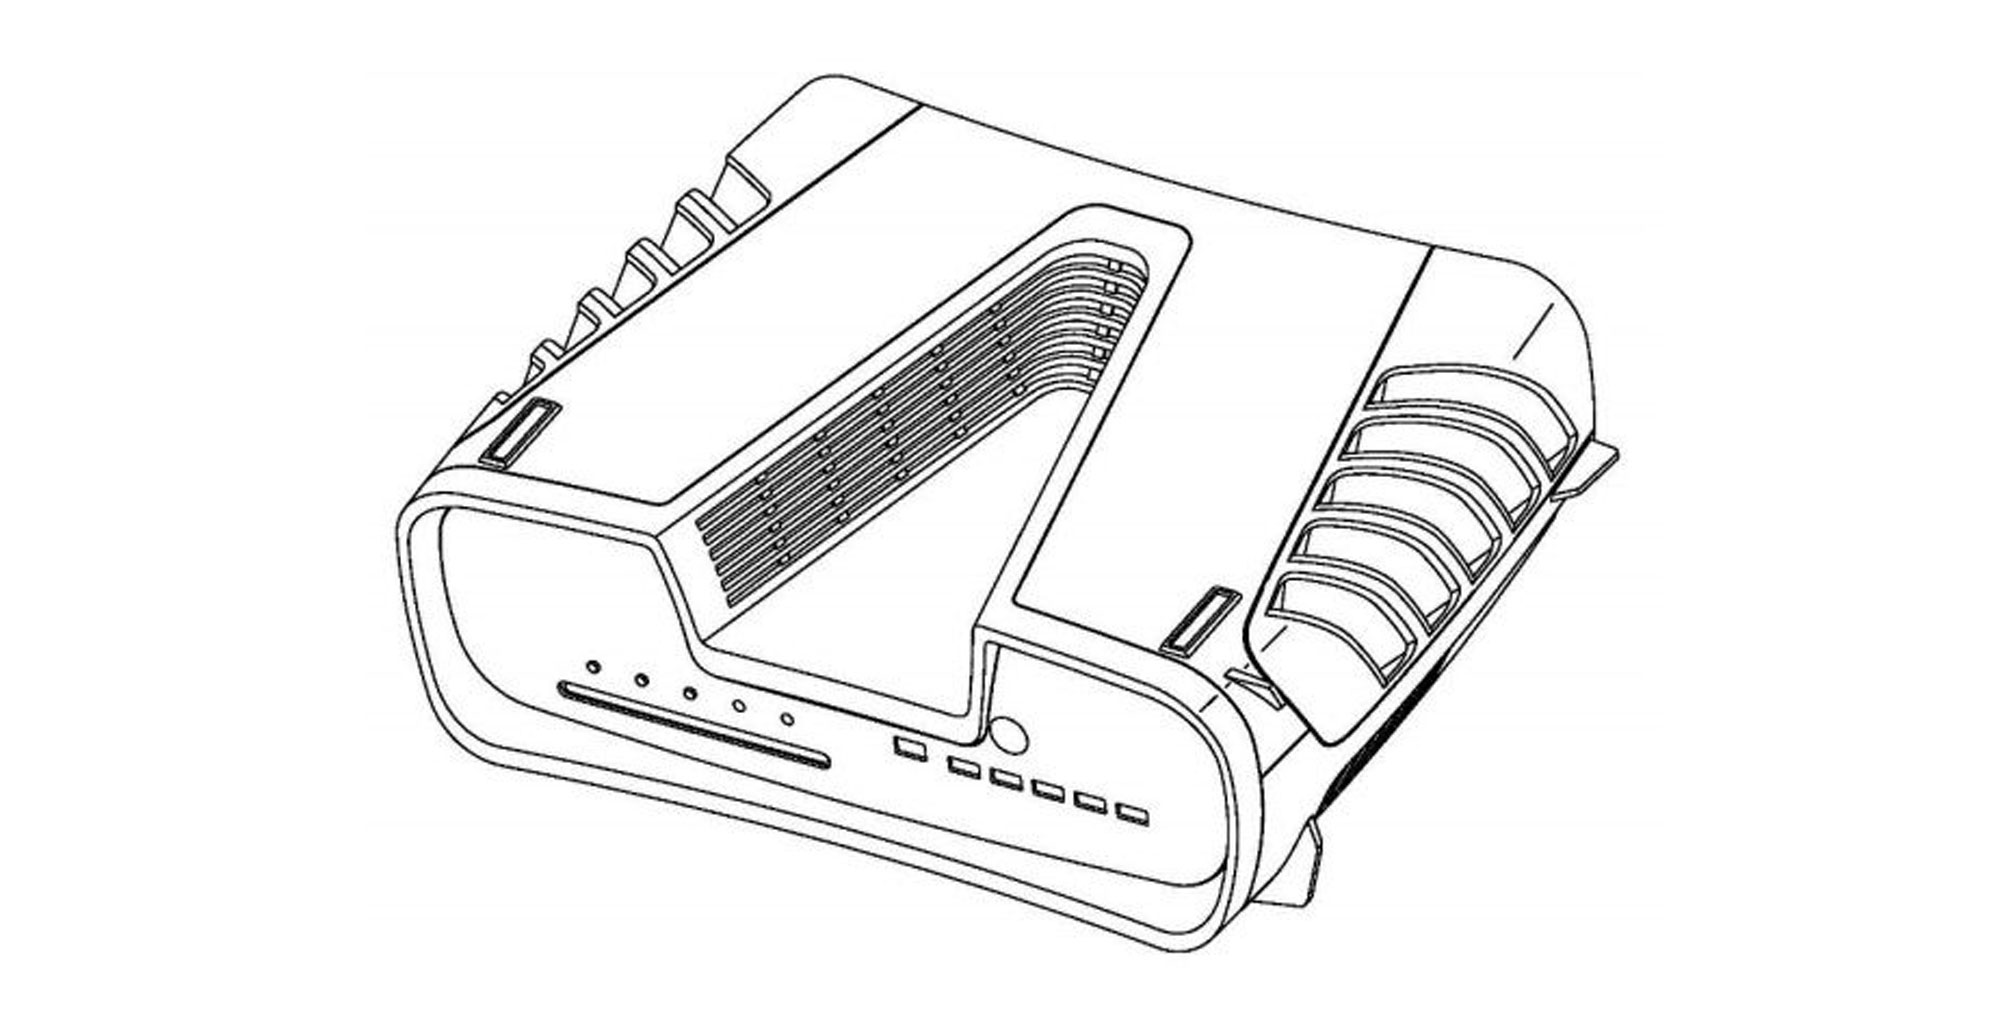 Sony's PlayStation 5 potential design leaked in patent